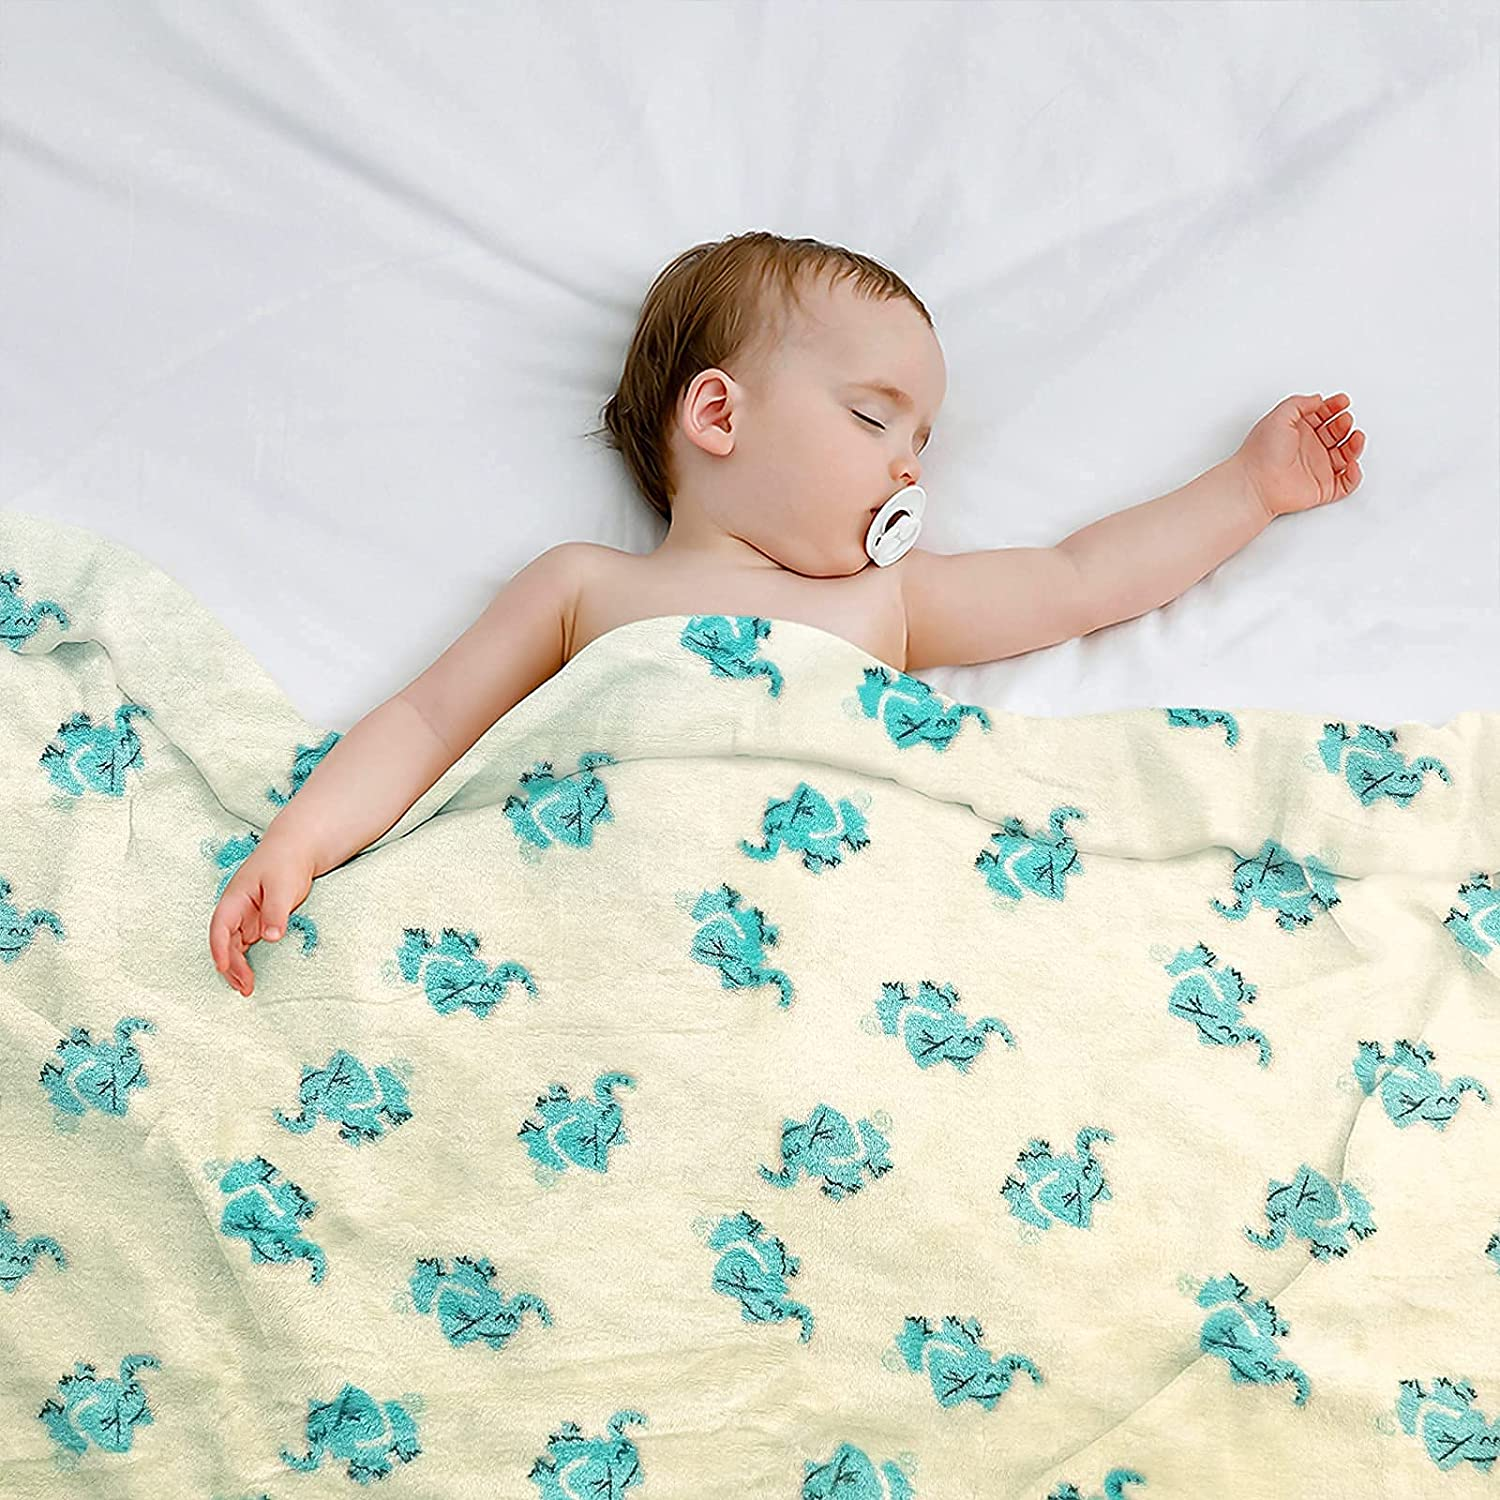 BT.WA Kids Blanket Flannel Throw Soft Ultra-Cheap Deals Baby T Max 79% OFF for